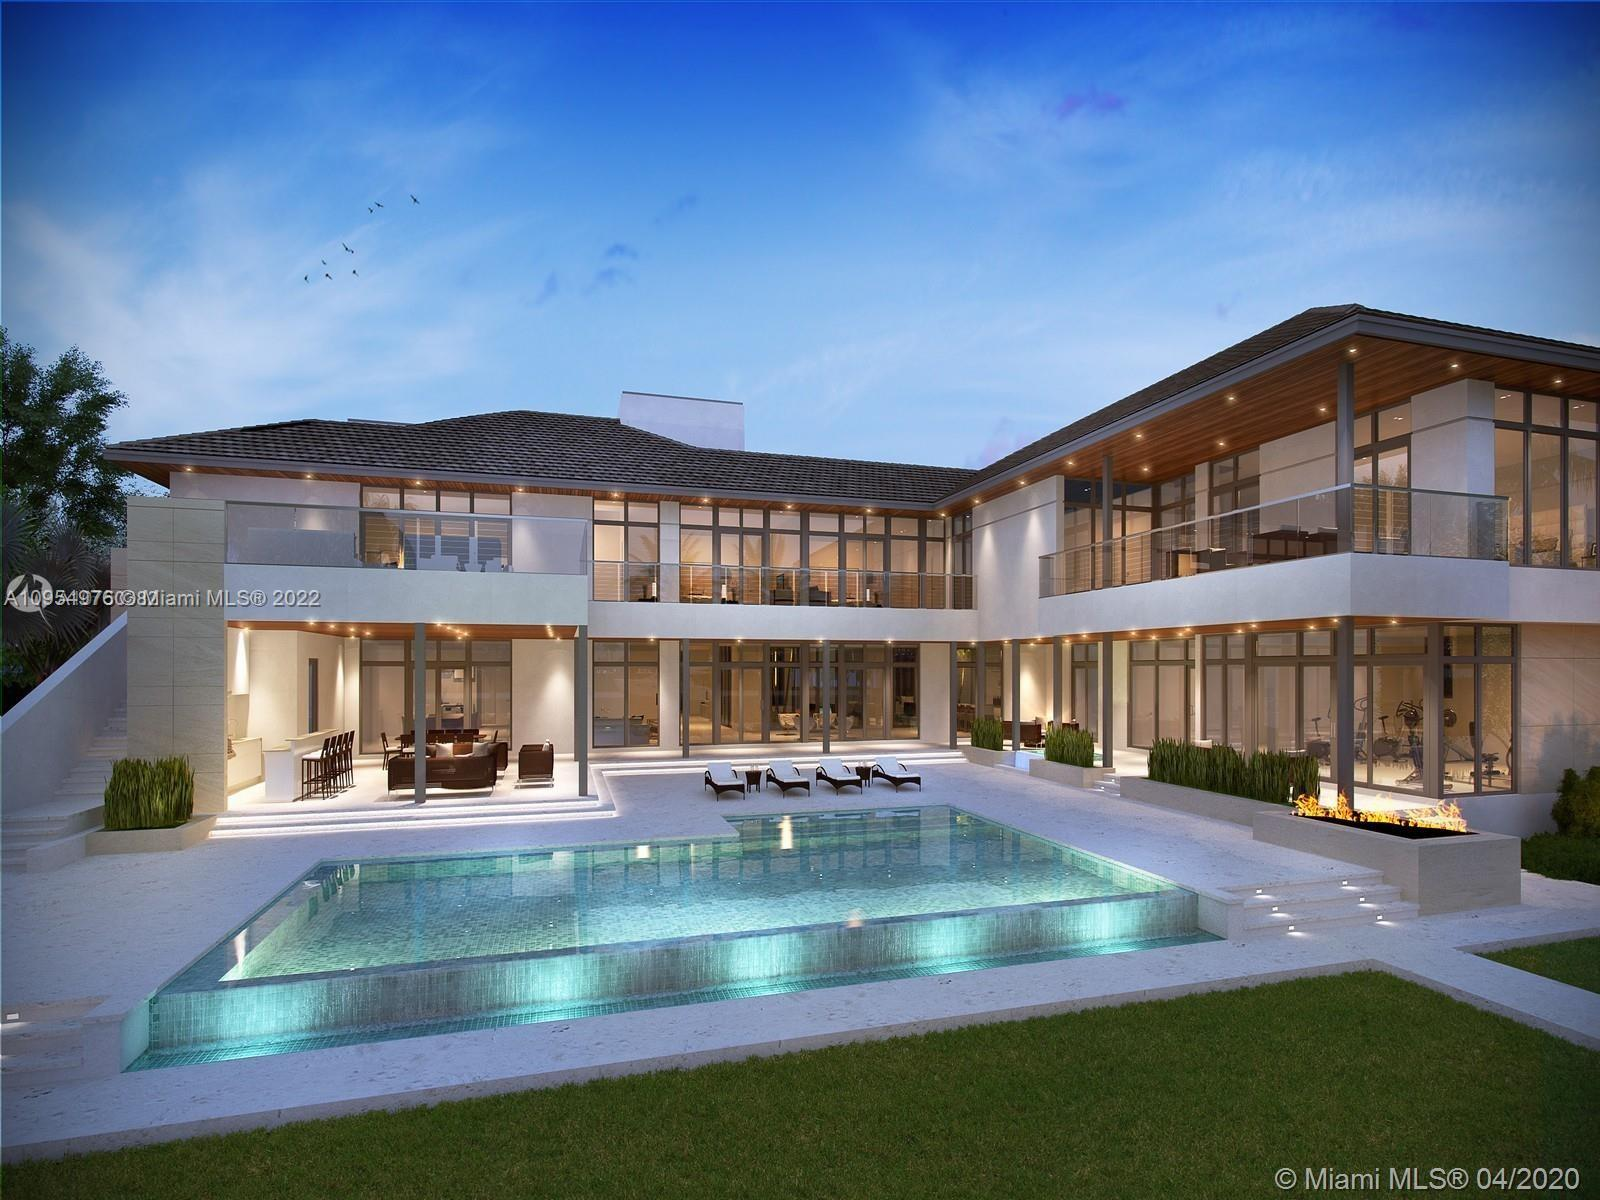 This captivating, modern custom estate is being completed by Mocca Construction in the exclusive Gables Estates Community. Open layout with privacy in mind, residence designed by Ramon Pacheco checks off every box. Features 9 beds, 11 baths and 2 half baths for a grandly scaled 20,726 SF of unrivaled living. Poured concrete walls and roof, this residence is a must see to appreciate the quality of construction and design. Oversized bedrooms, 2 bedroom staff quarters, library/office, spa/yoga/fitness studio, elevator, glass wine cellar and so much more fill this incomparable home. 220 FT of water frontage with a brand new 140 ft dock add to the list of luxuries to this sophisticated and unique opportunity. Expected completion March 2022.